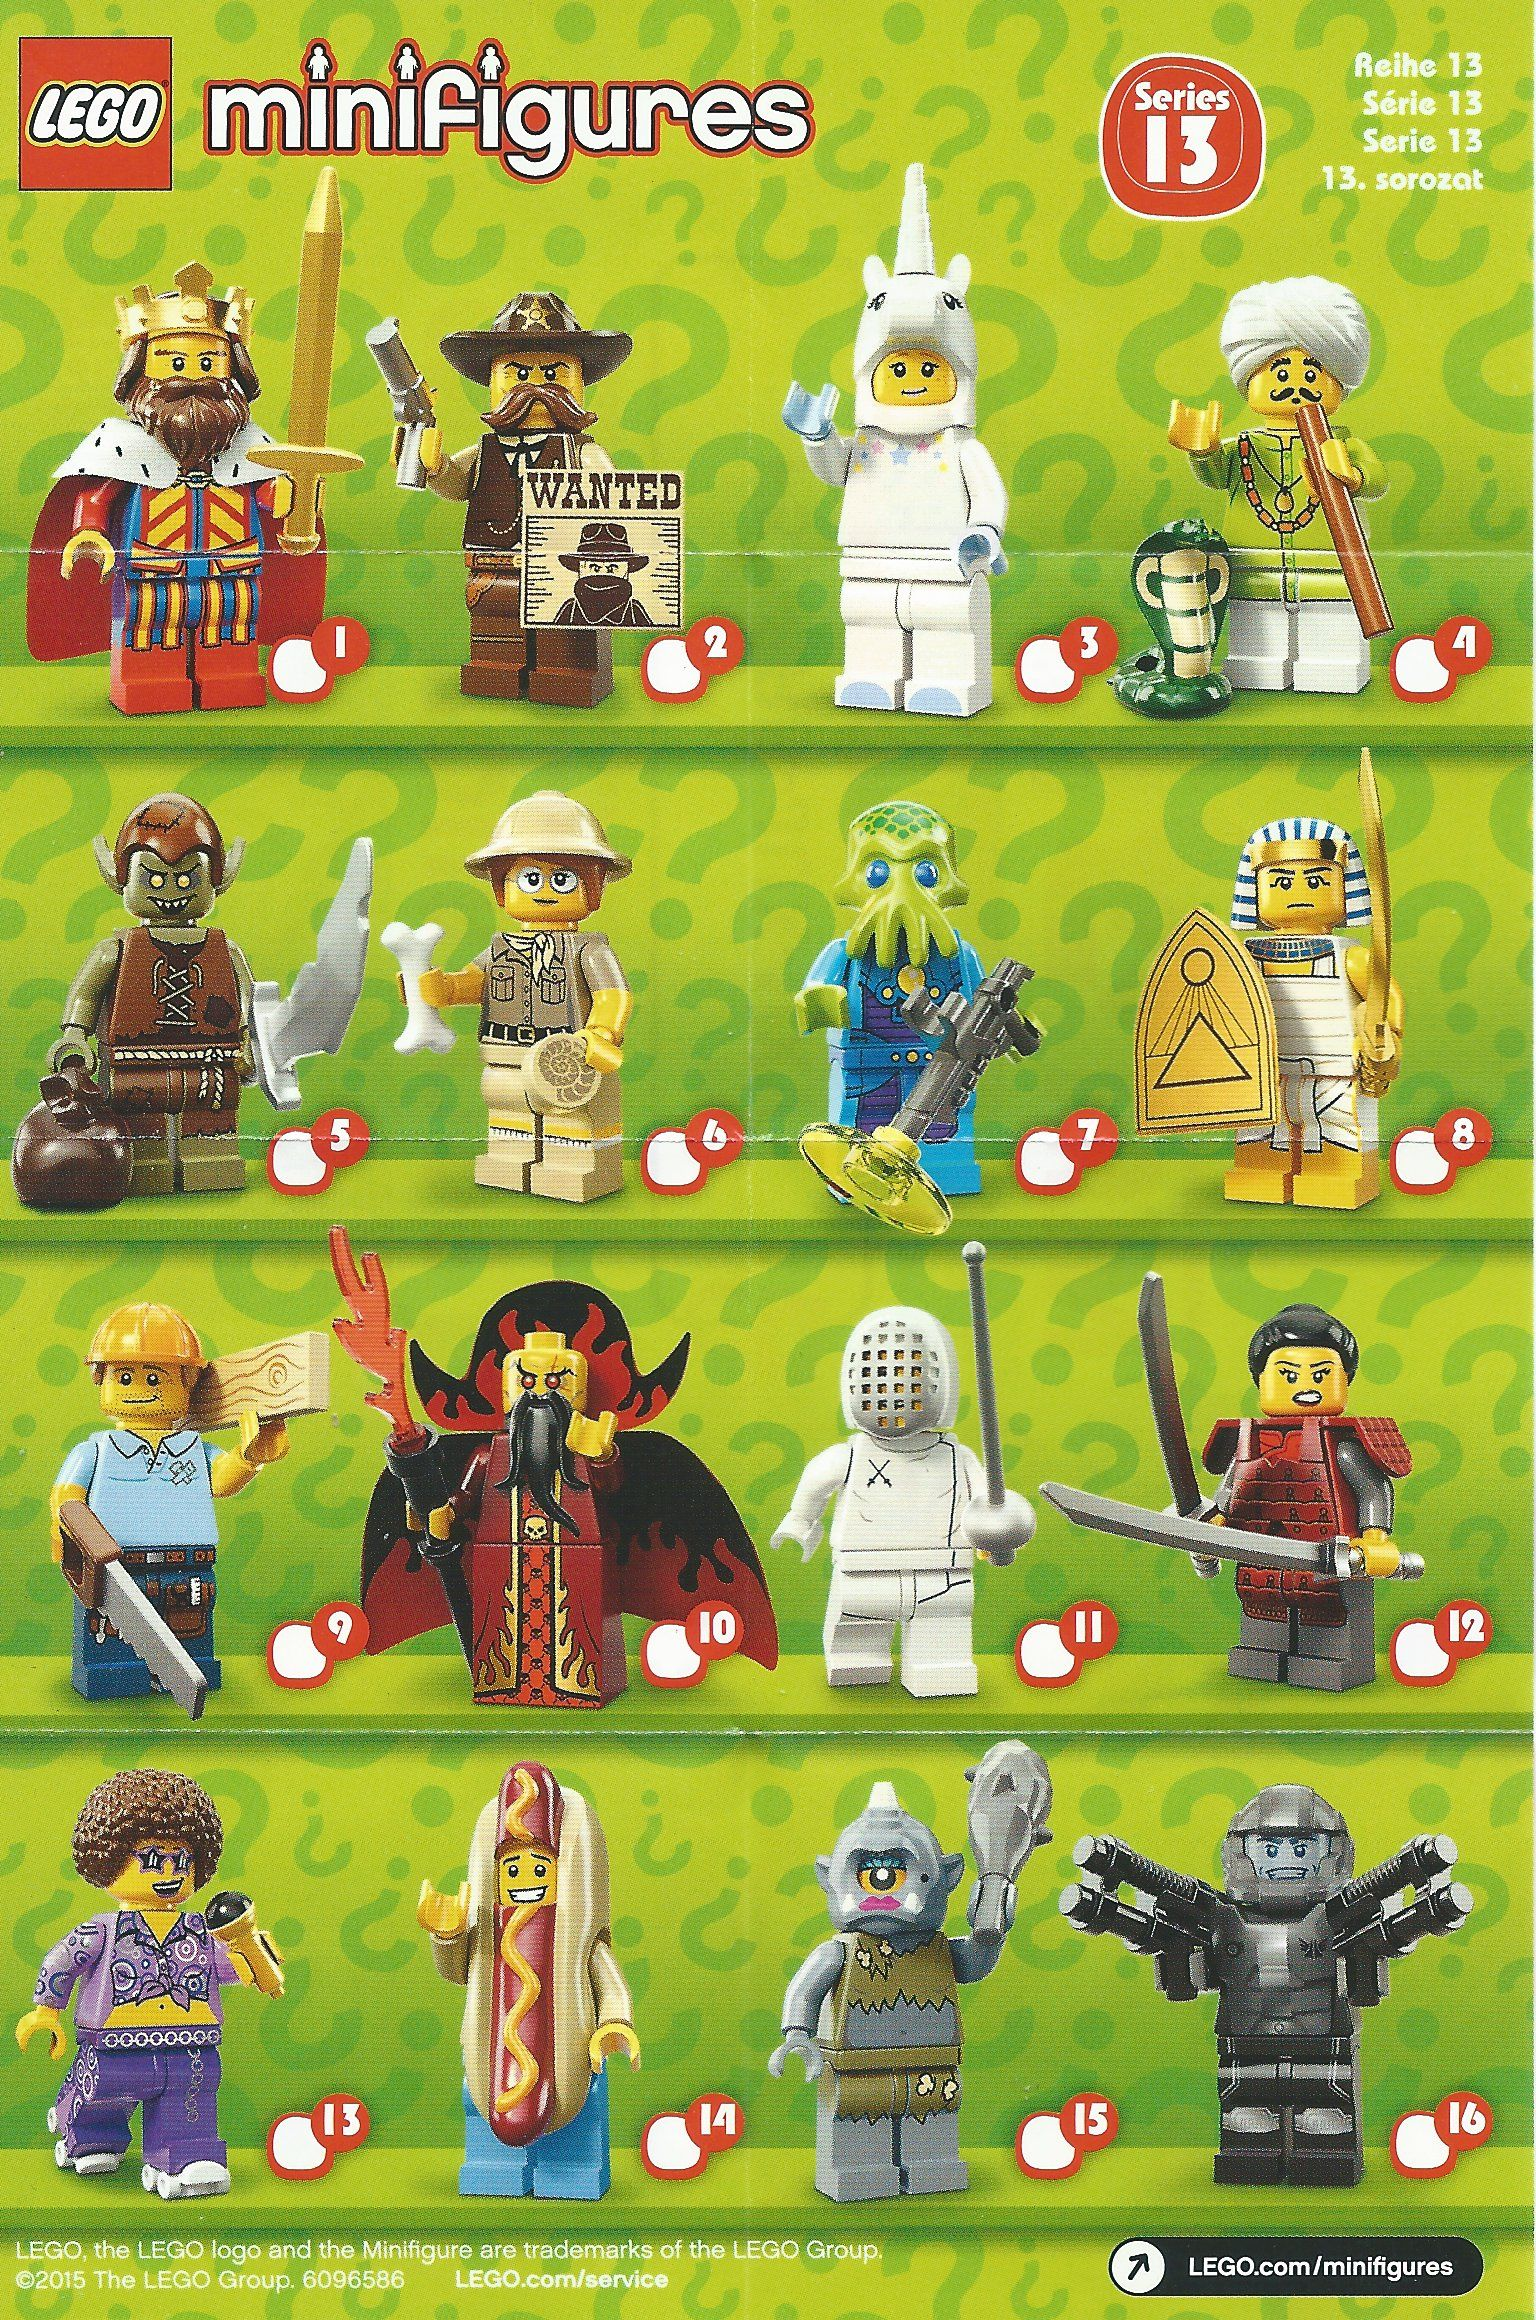 CHOOSE YOUR FIGURE 71008 LEGO Minifigures SERIES 13 NEW